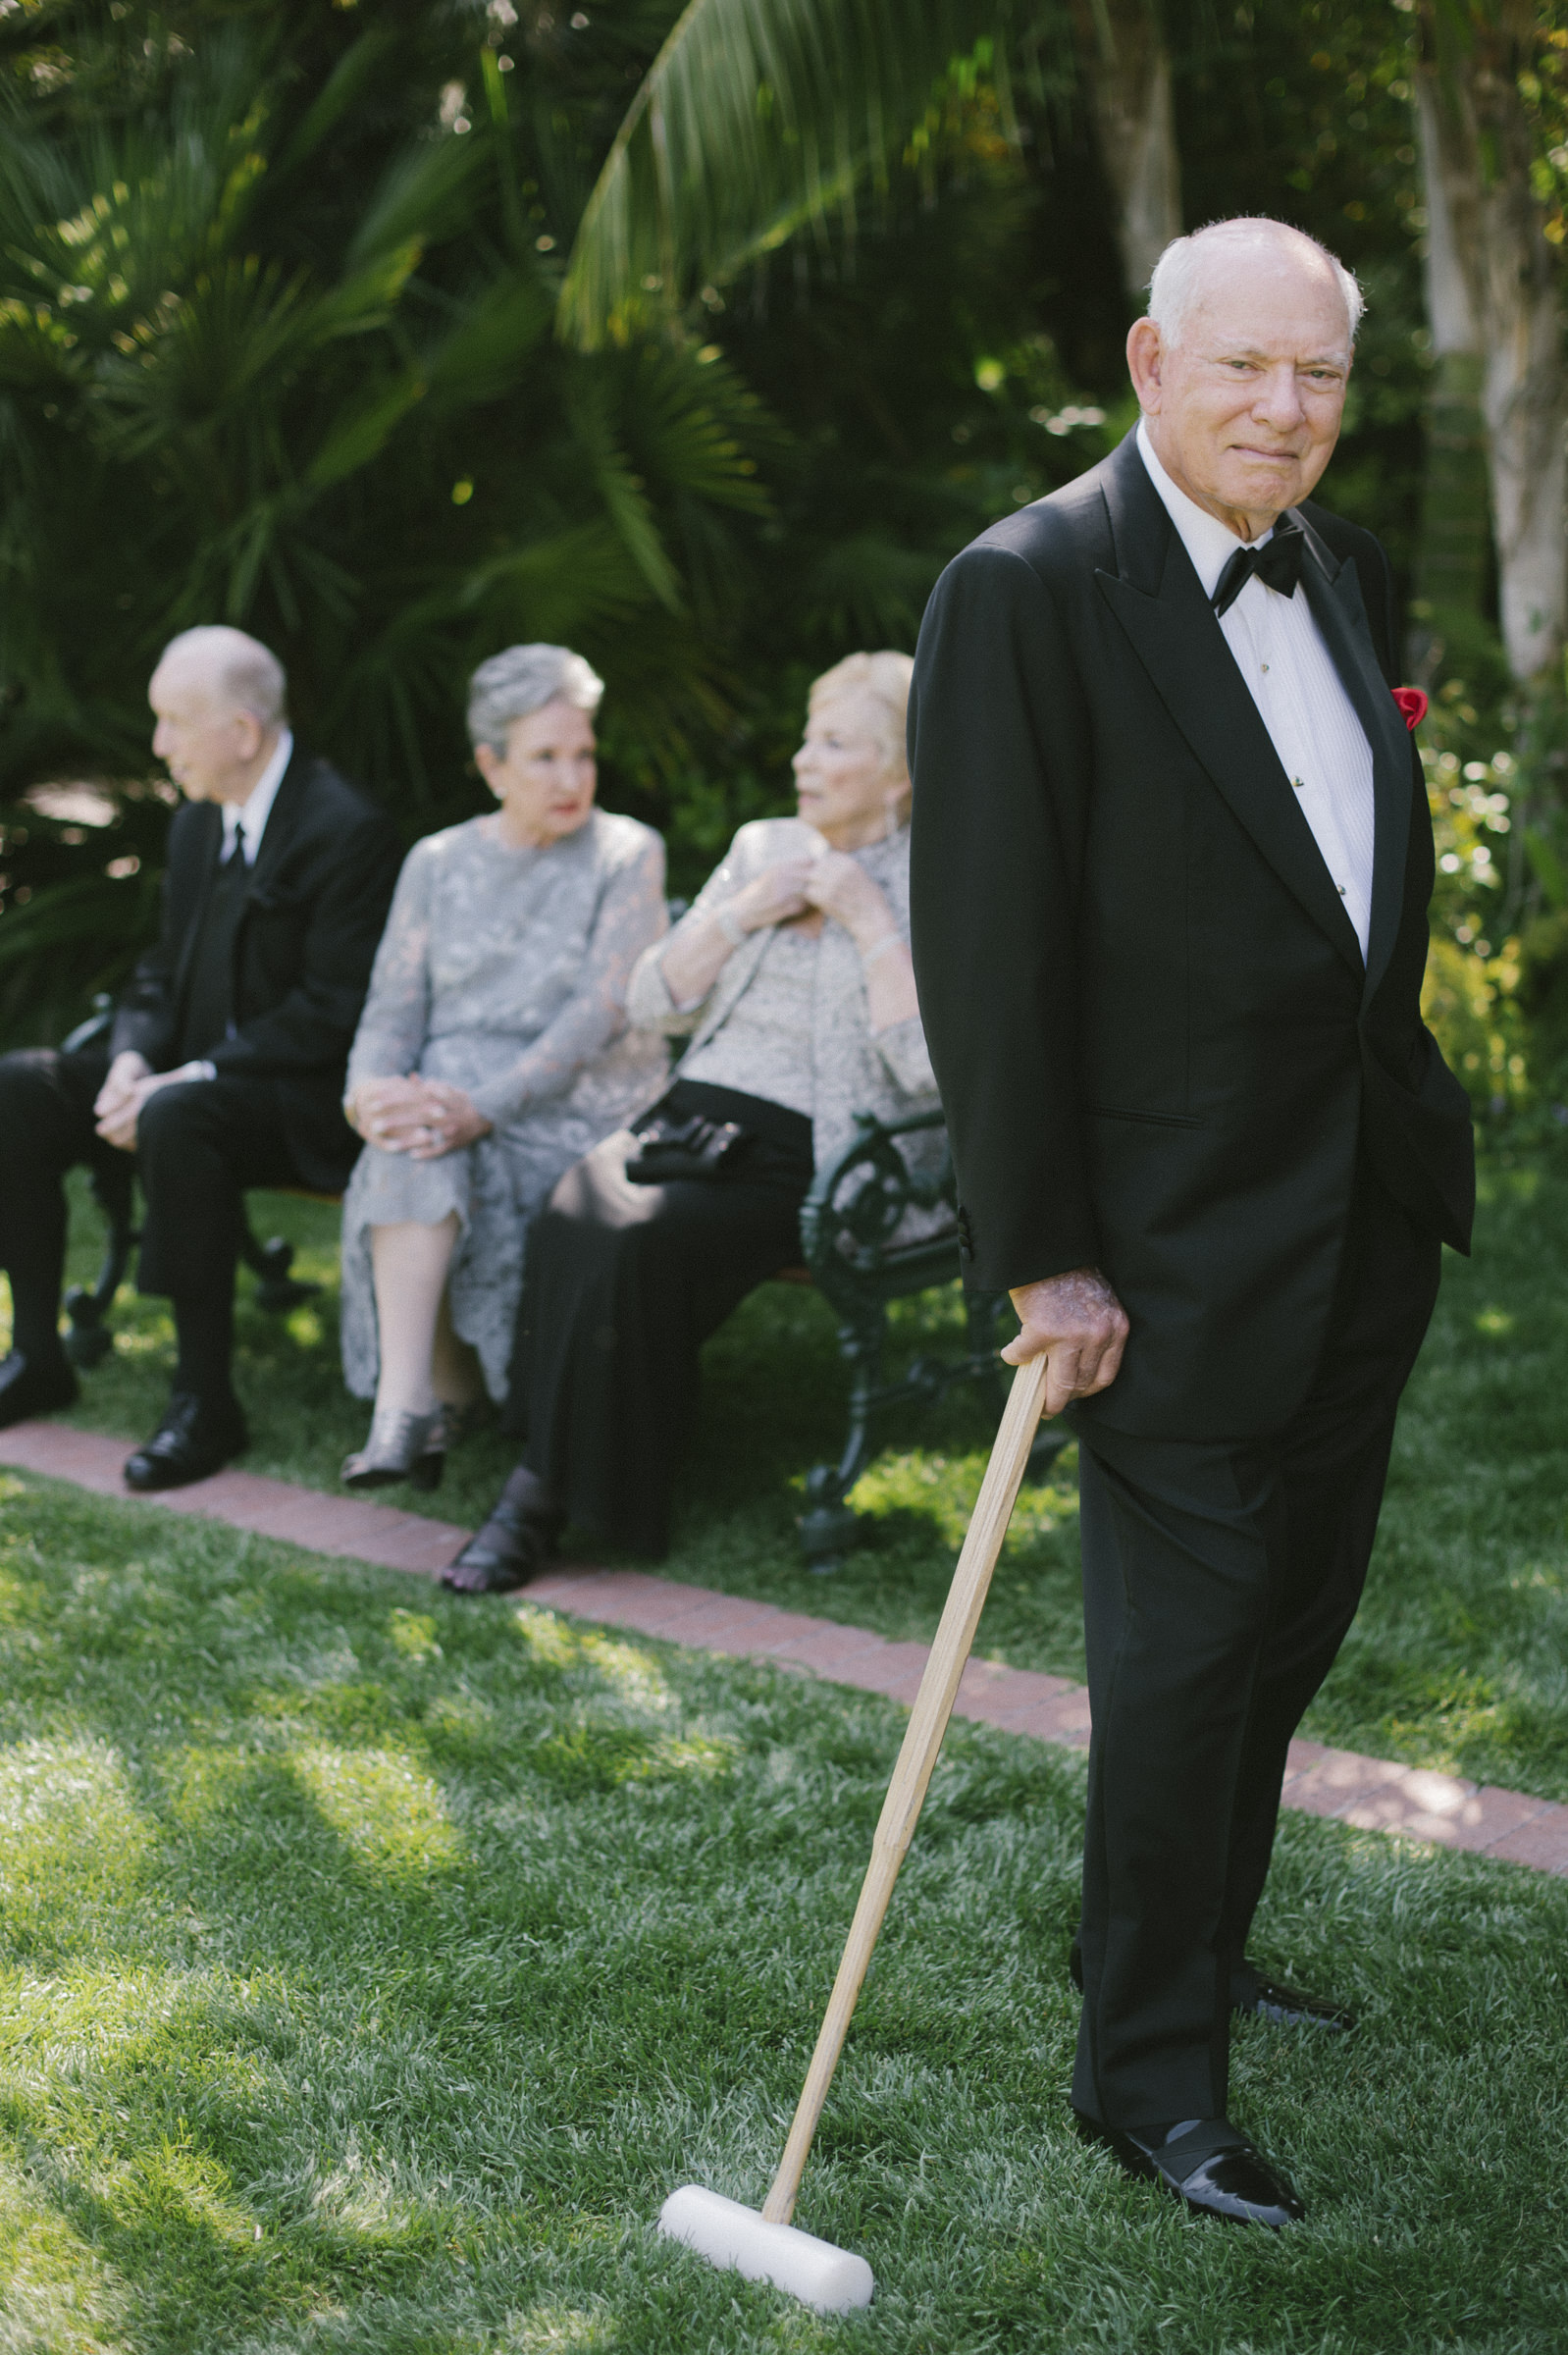 Elderly wedding guest with croquet mallet - photo by Amy and Stuart Photography